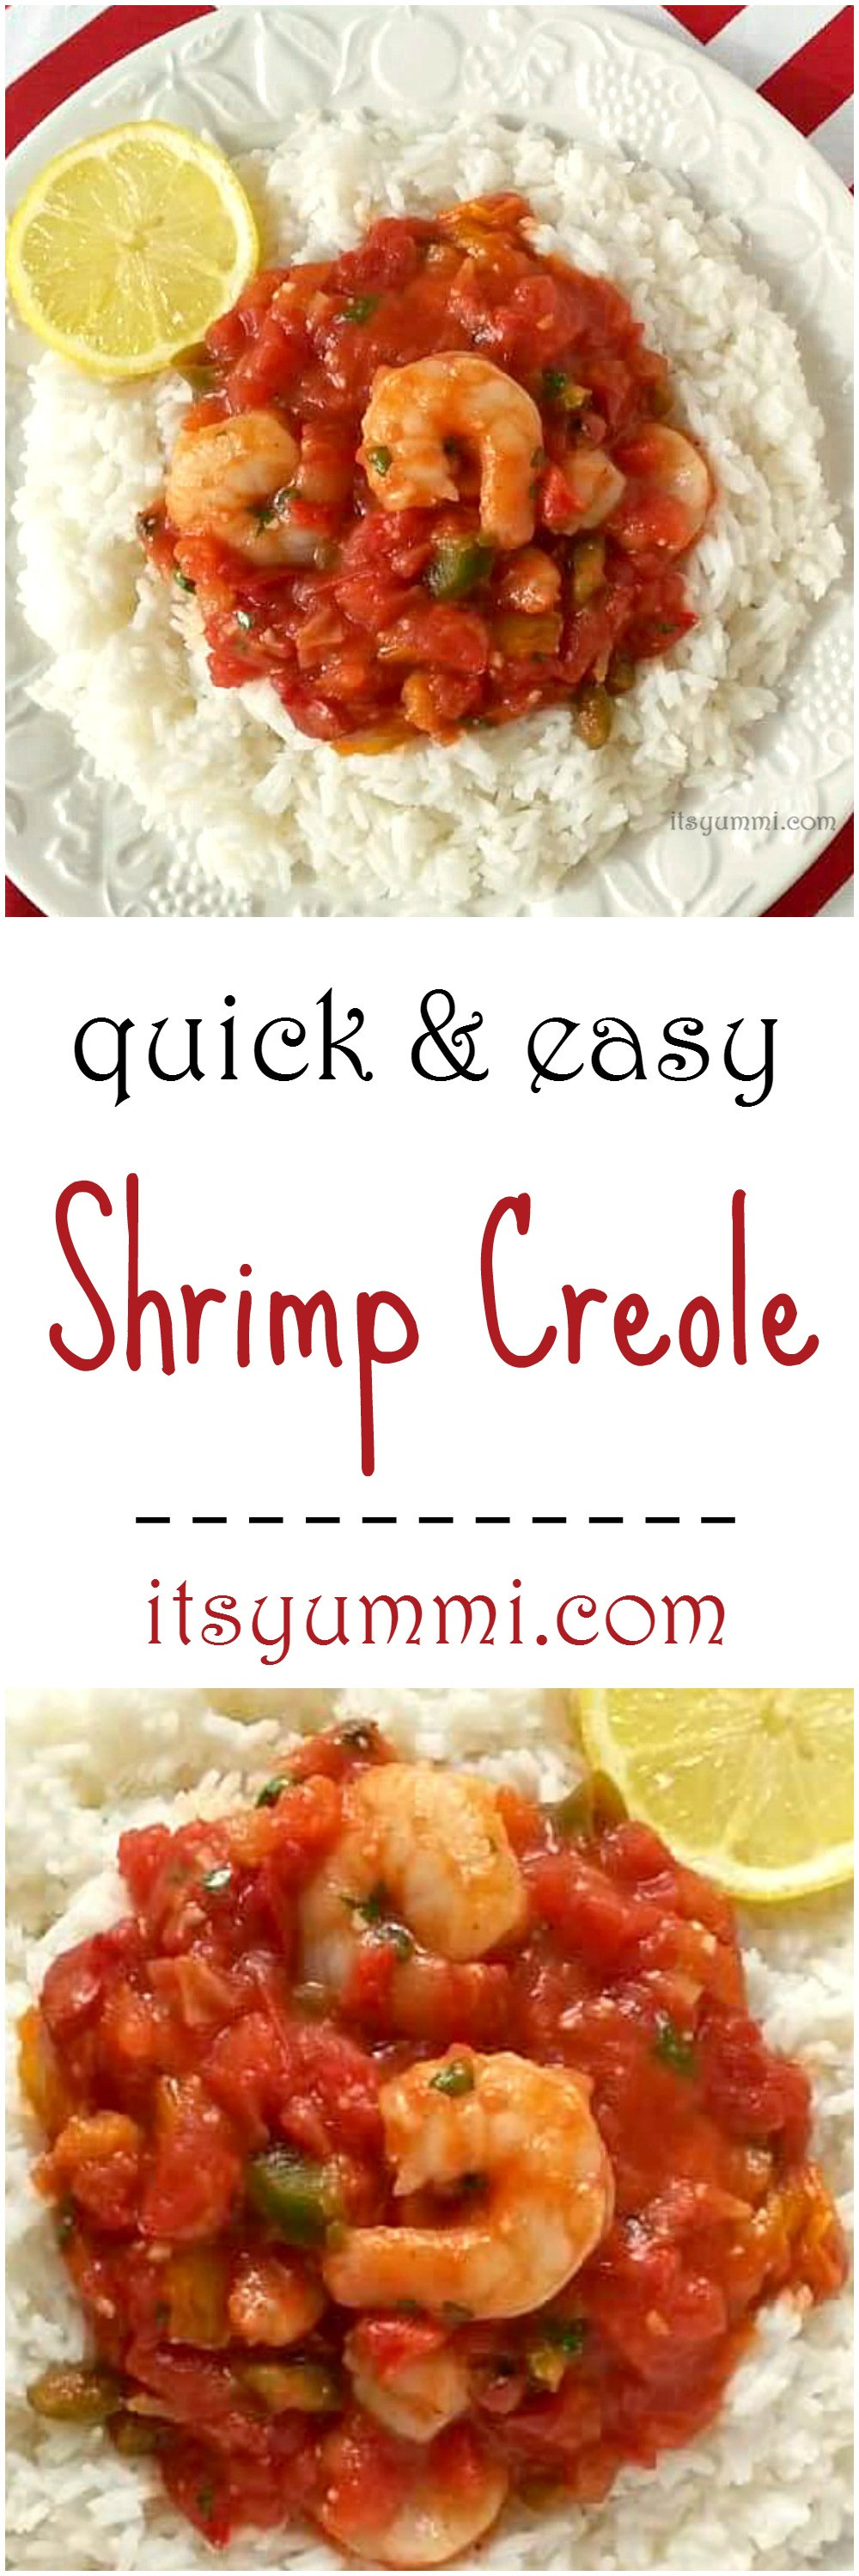 Shrimp creole recipe dinner under 30 minutes its yummi bites quick and easy shrimp creole a southern louisiana classic dinner recipe made in less forumfinder Image collections